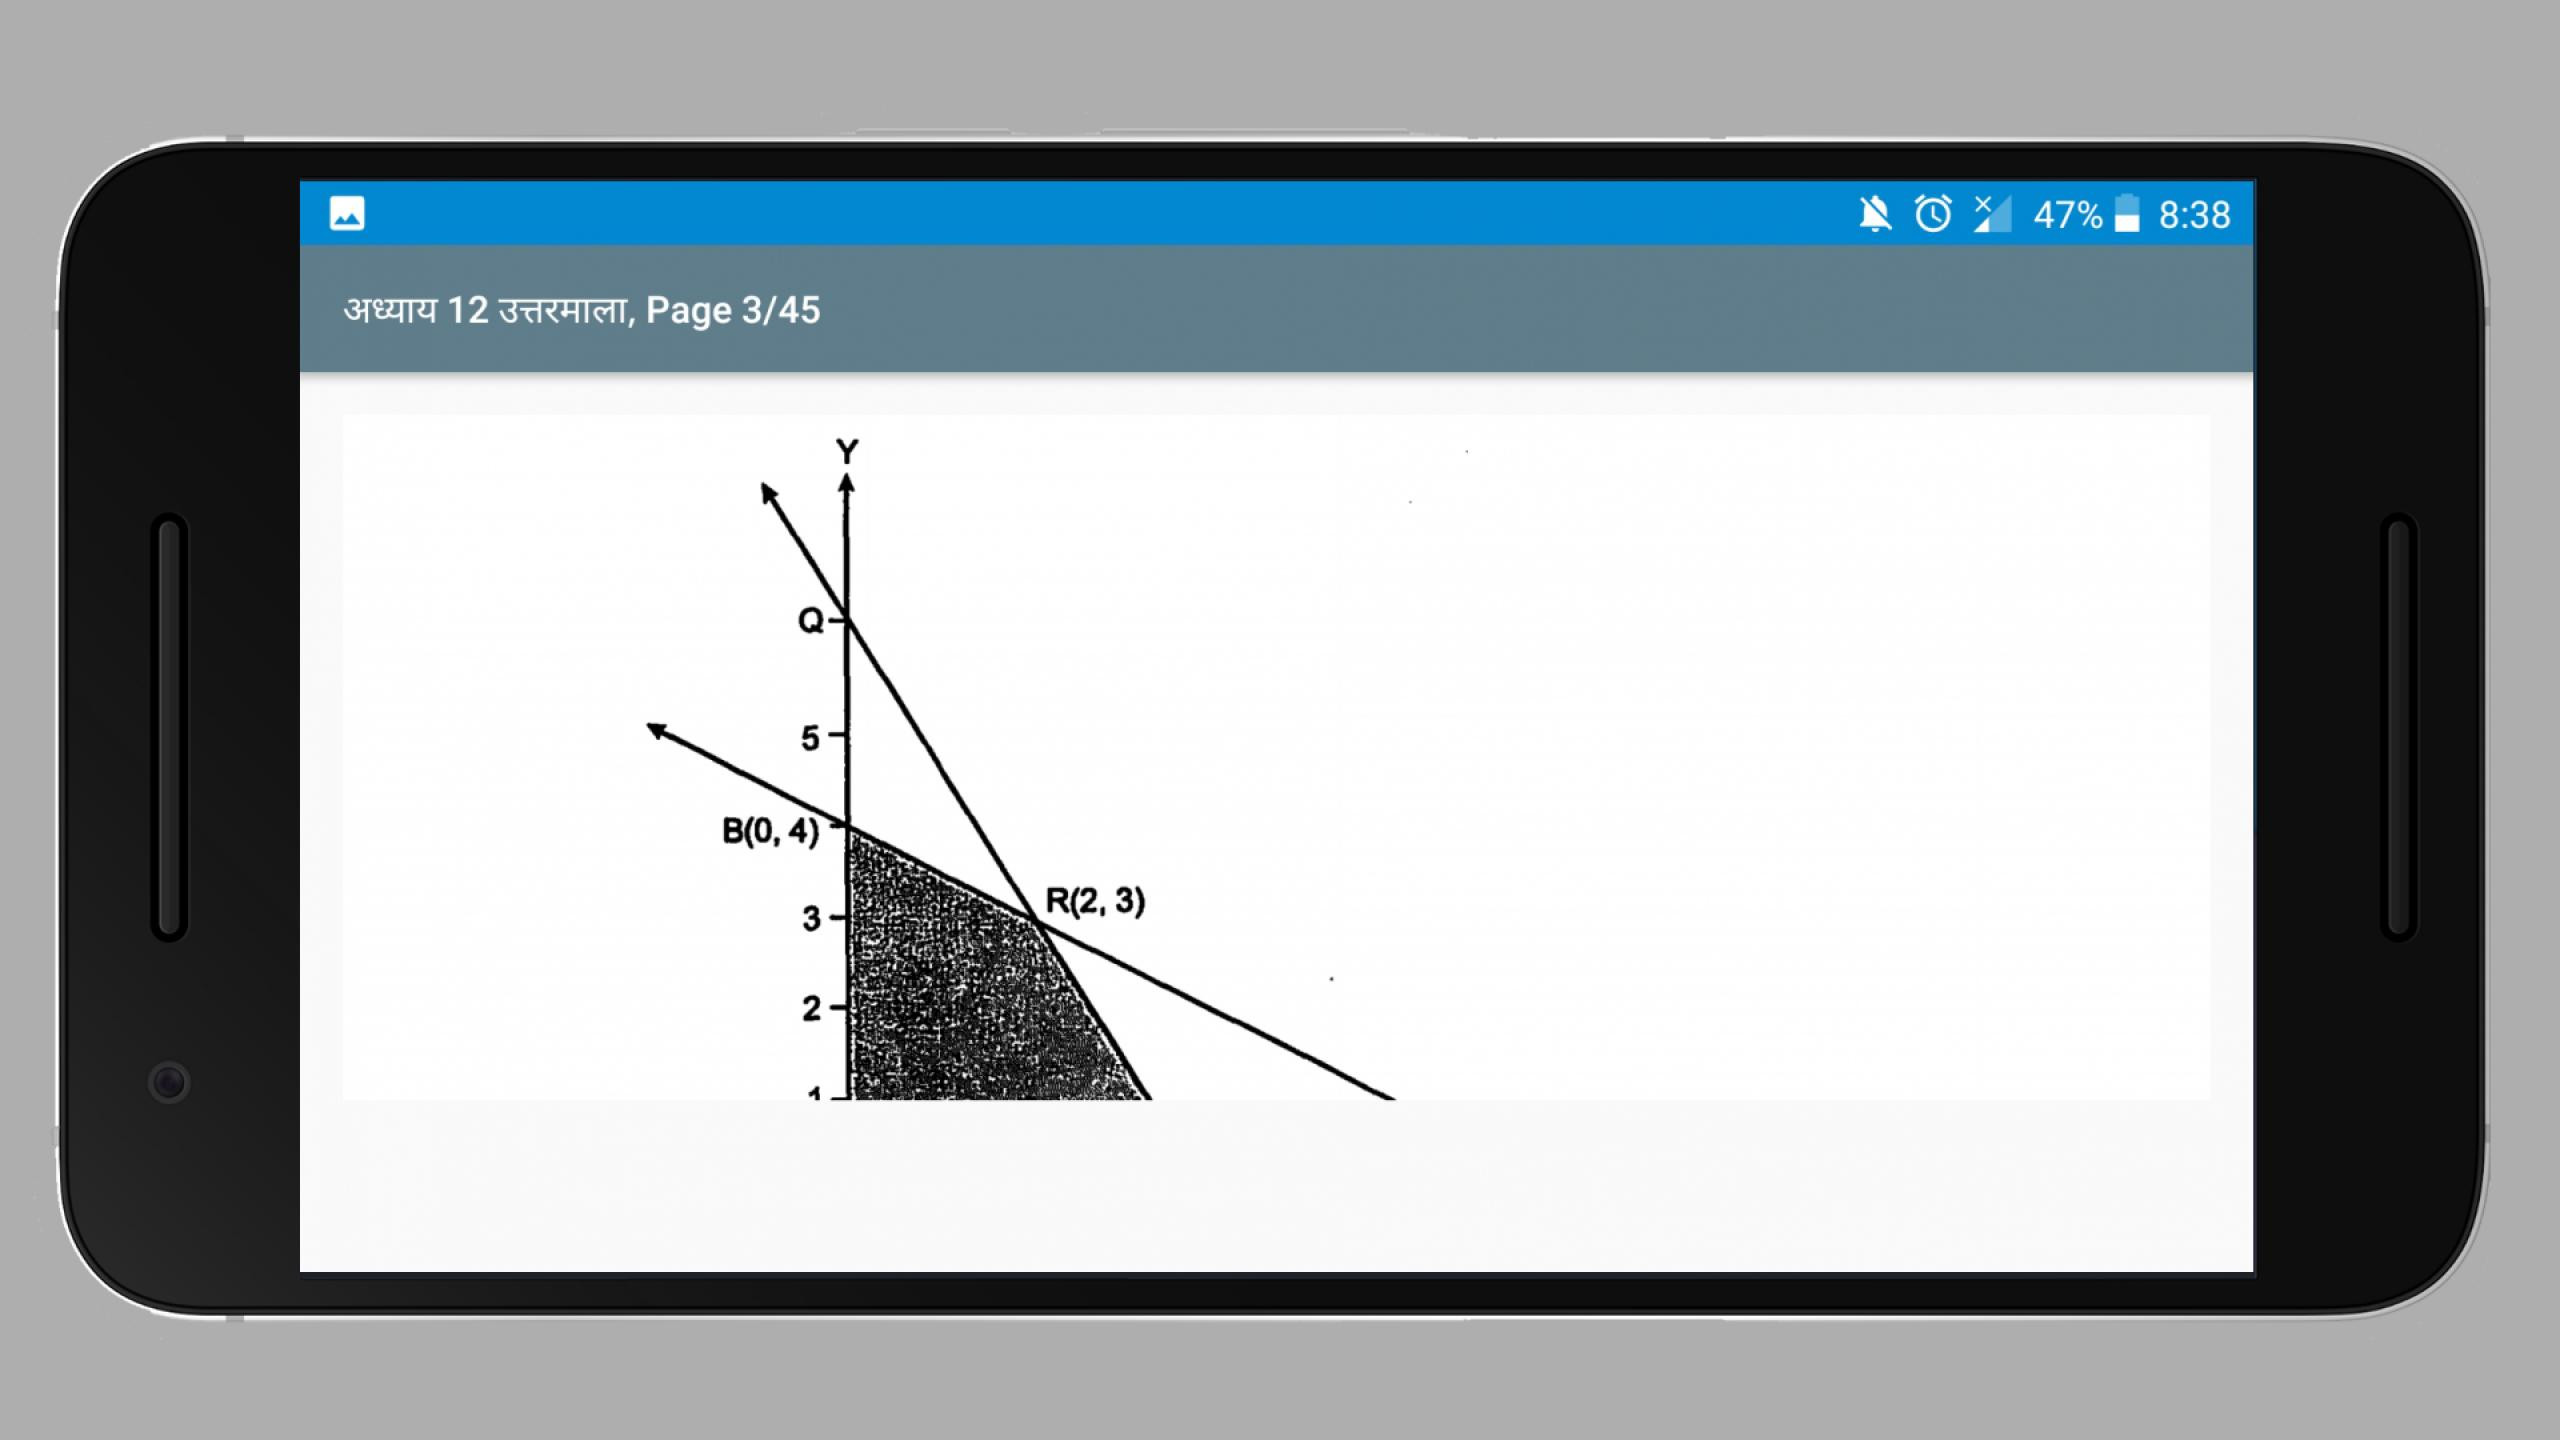 Class 12 Maths NCERT Solutions (Part 2) (Hindi) for Android